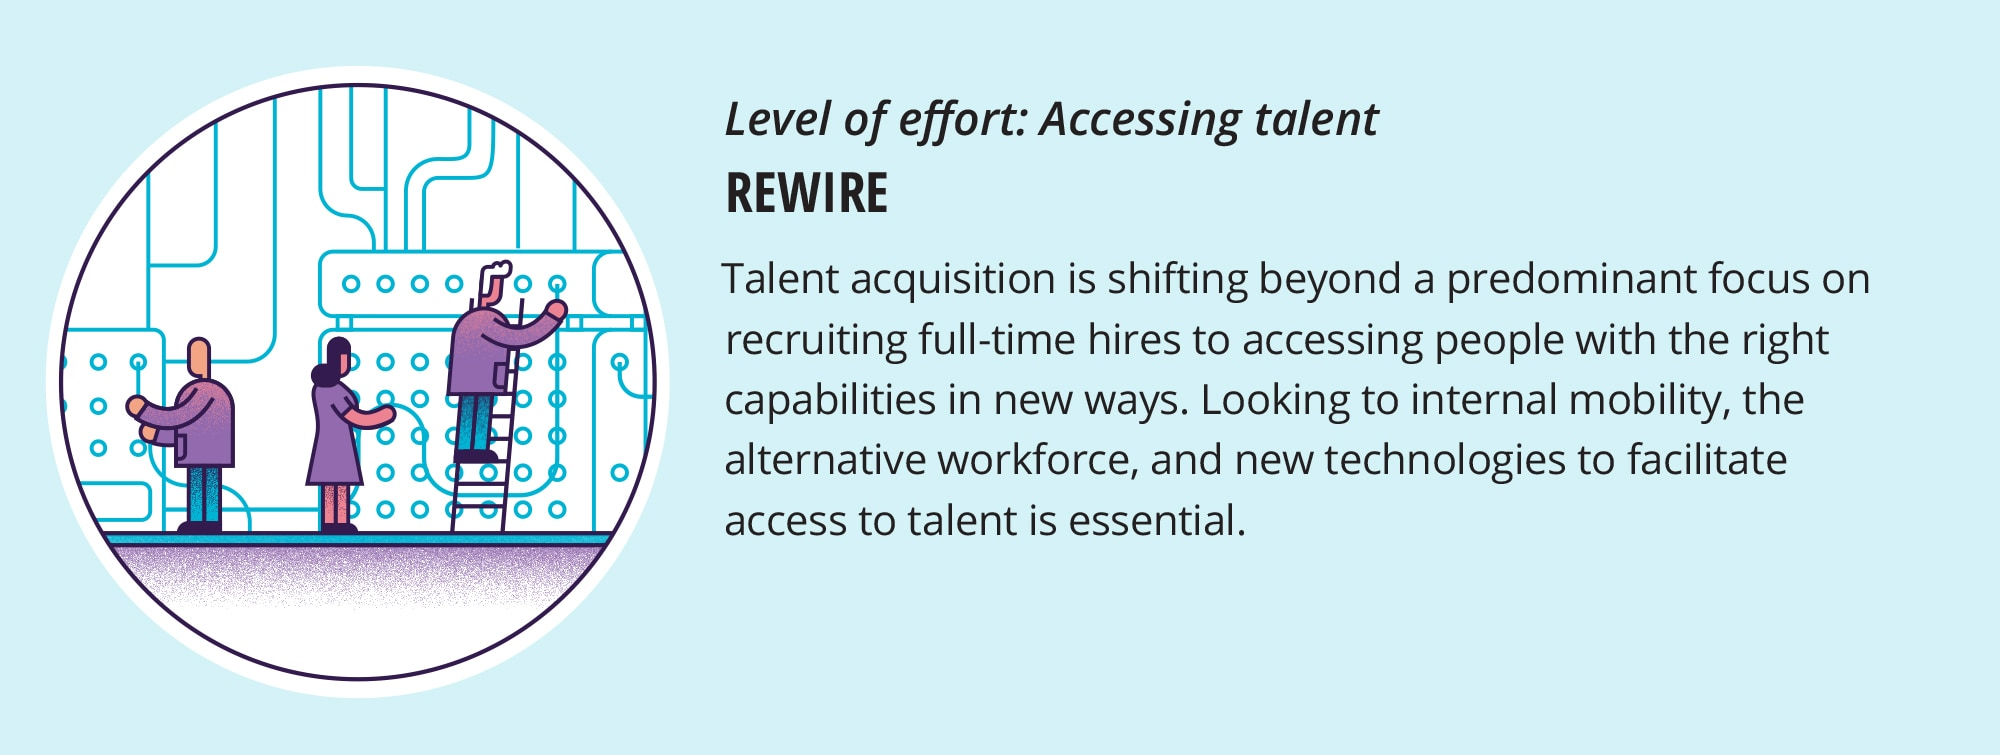 Talent acquisition opportunities in today's world   Deloitte Insights